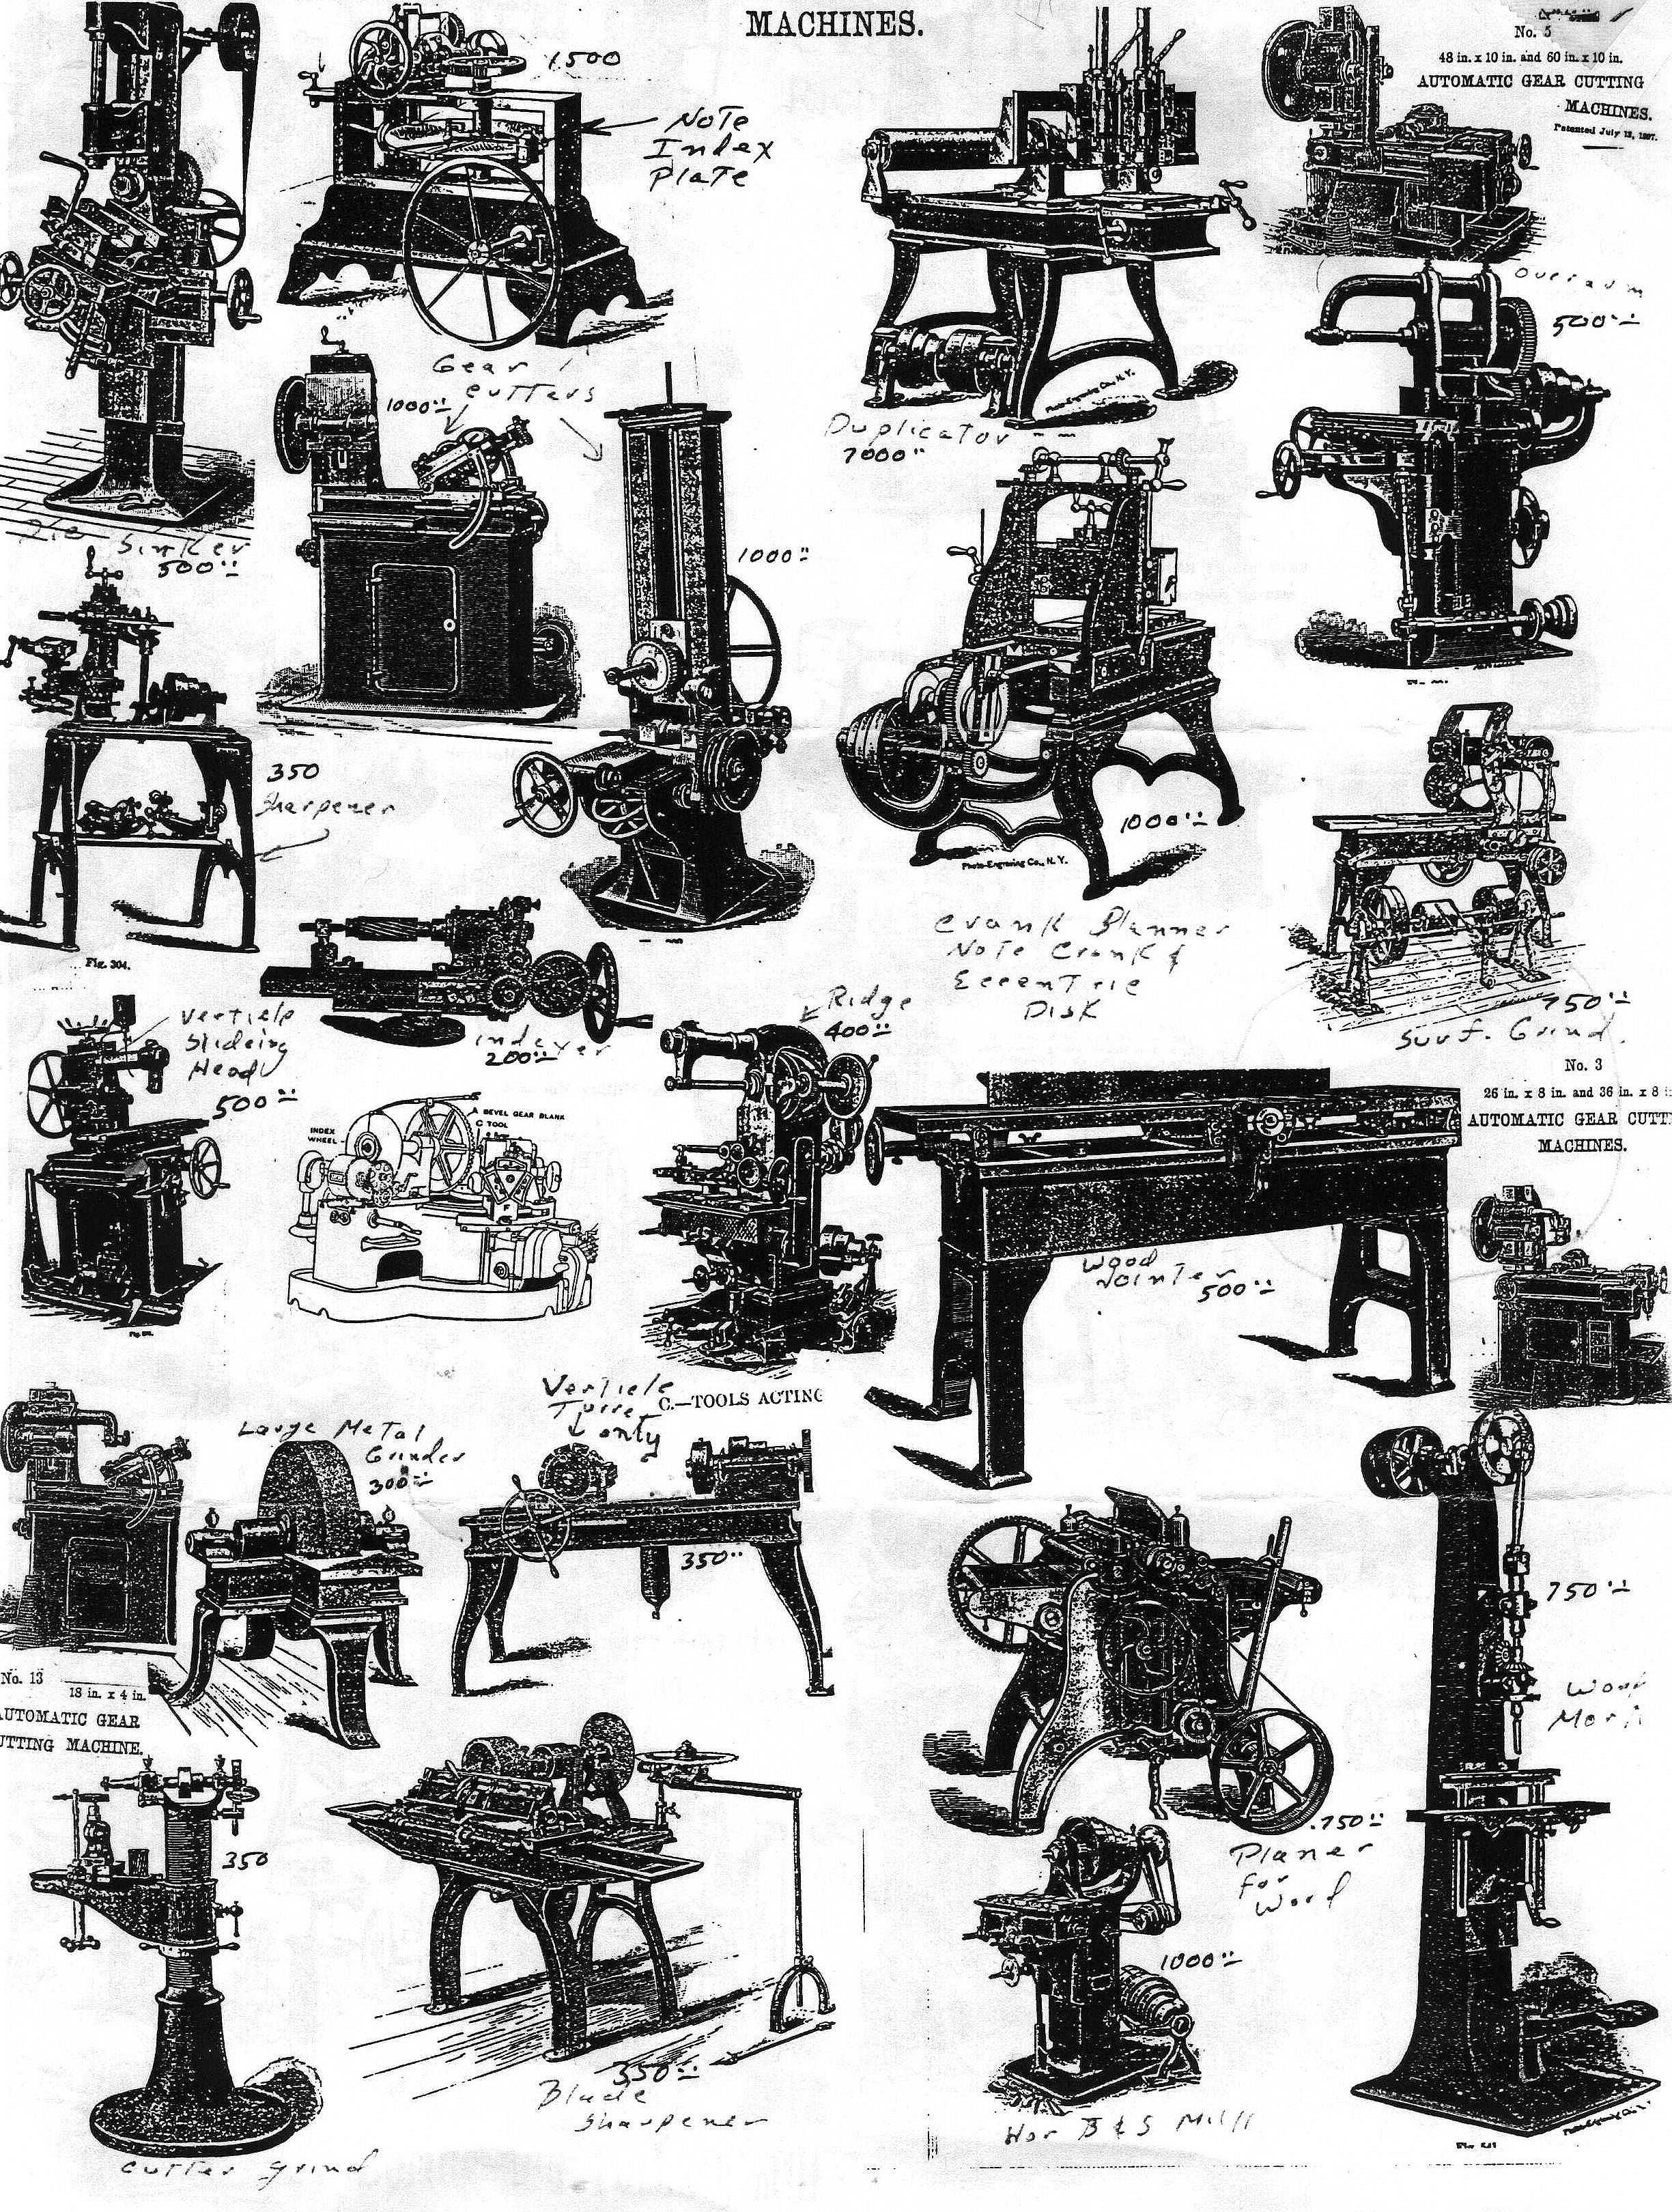 Vintage machinist tools clipart clip art royalty free Pin by Evan Roark on machines in 2019 | Antique tools ... clip art royalty free